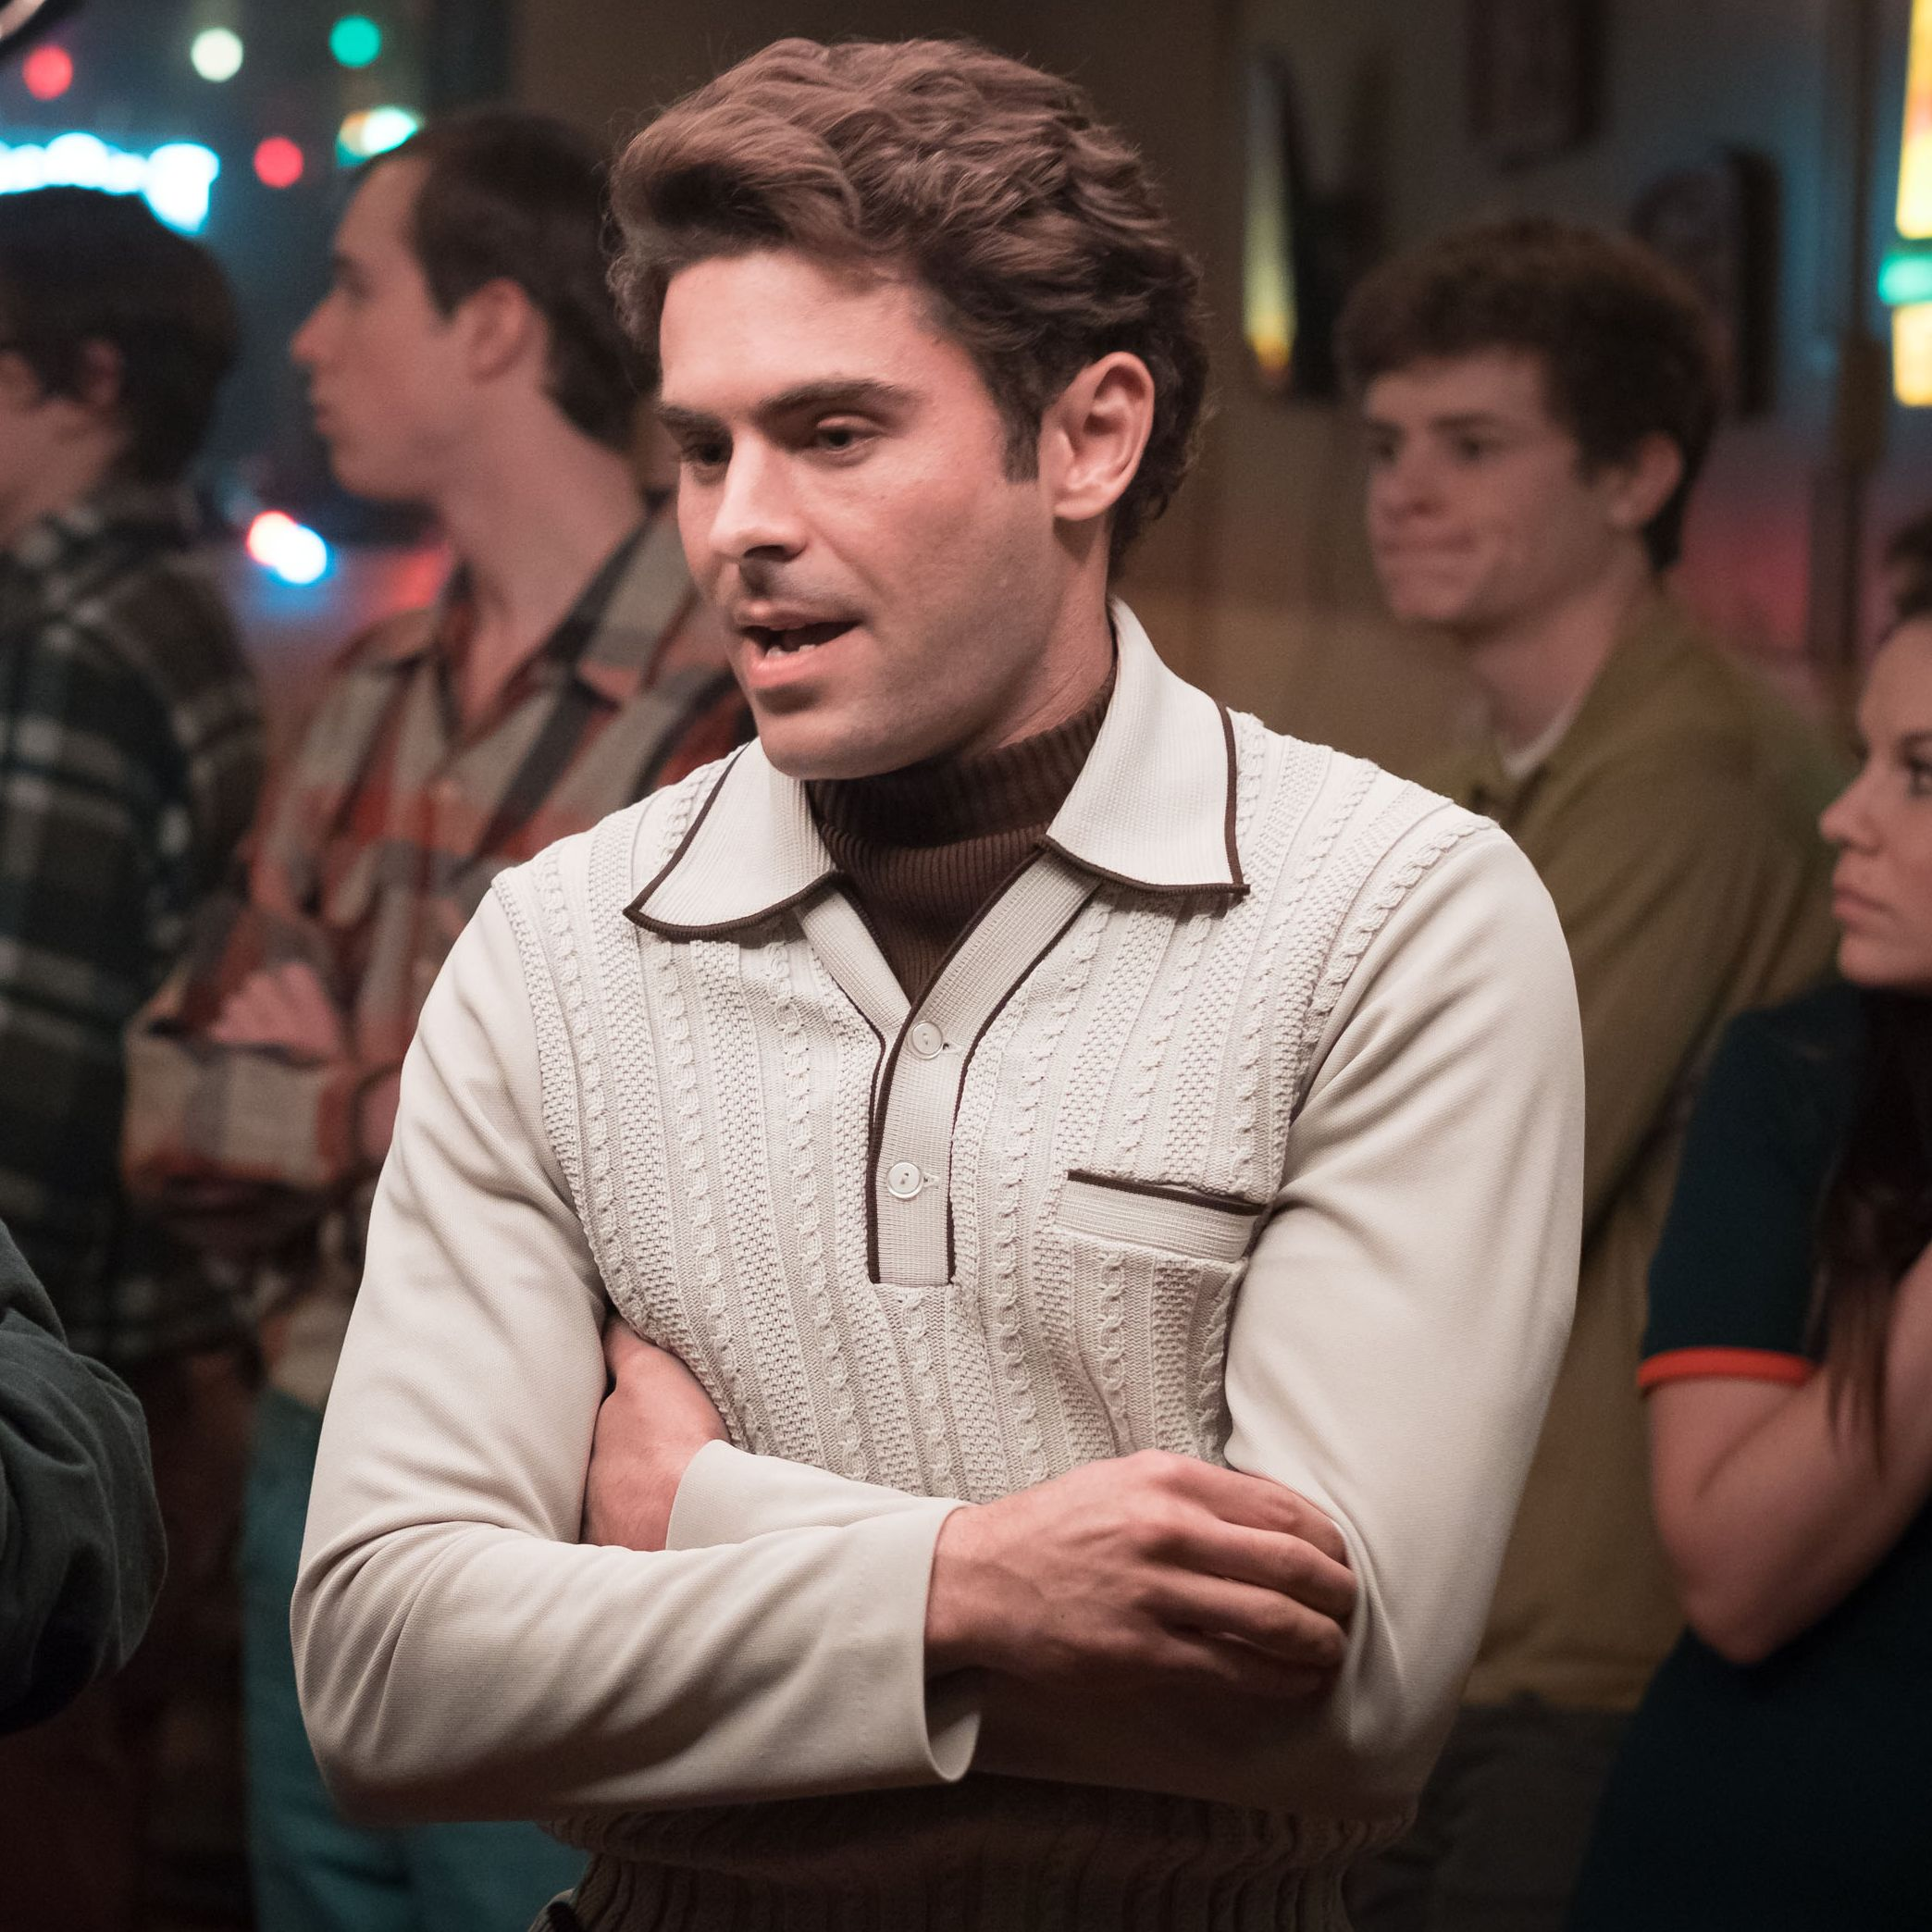 Zac Efron plays Bundy in Netflix's Extremely Wicked, Shockingly Evil and Vile